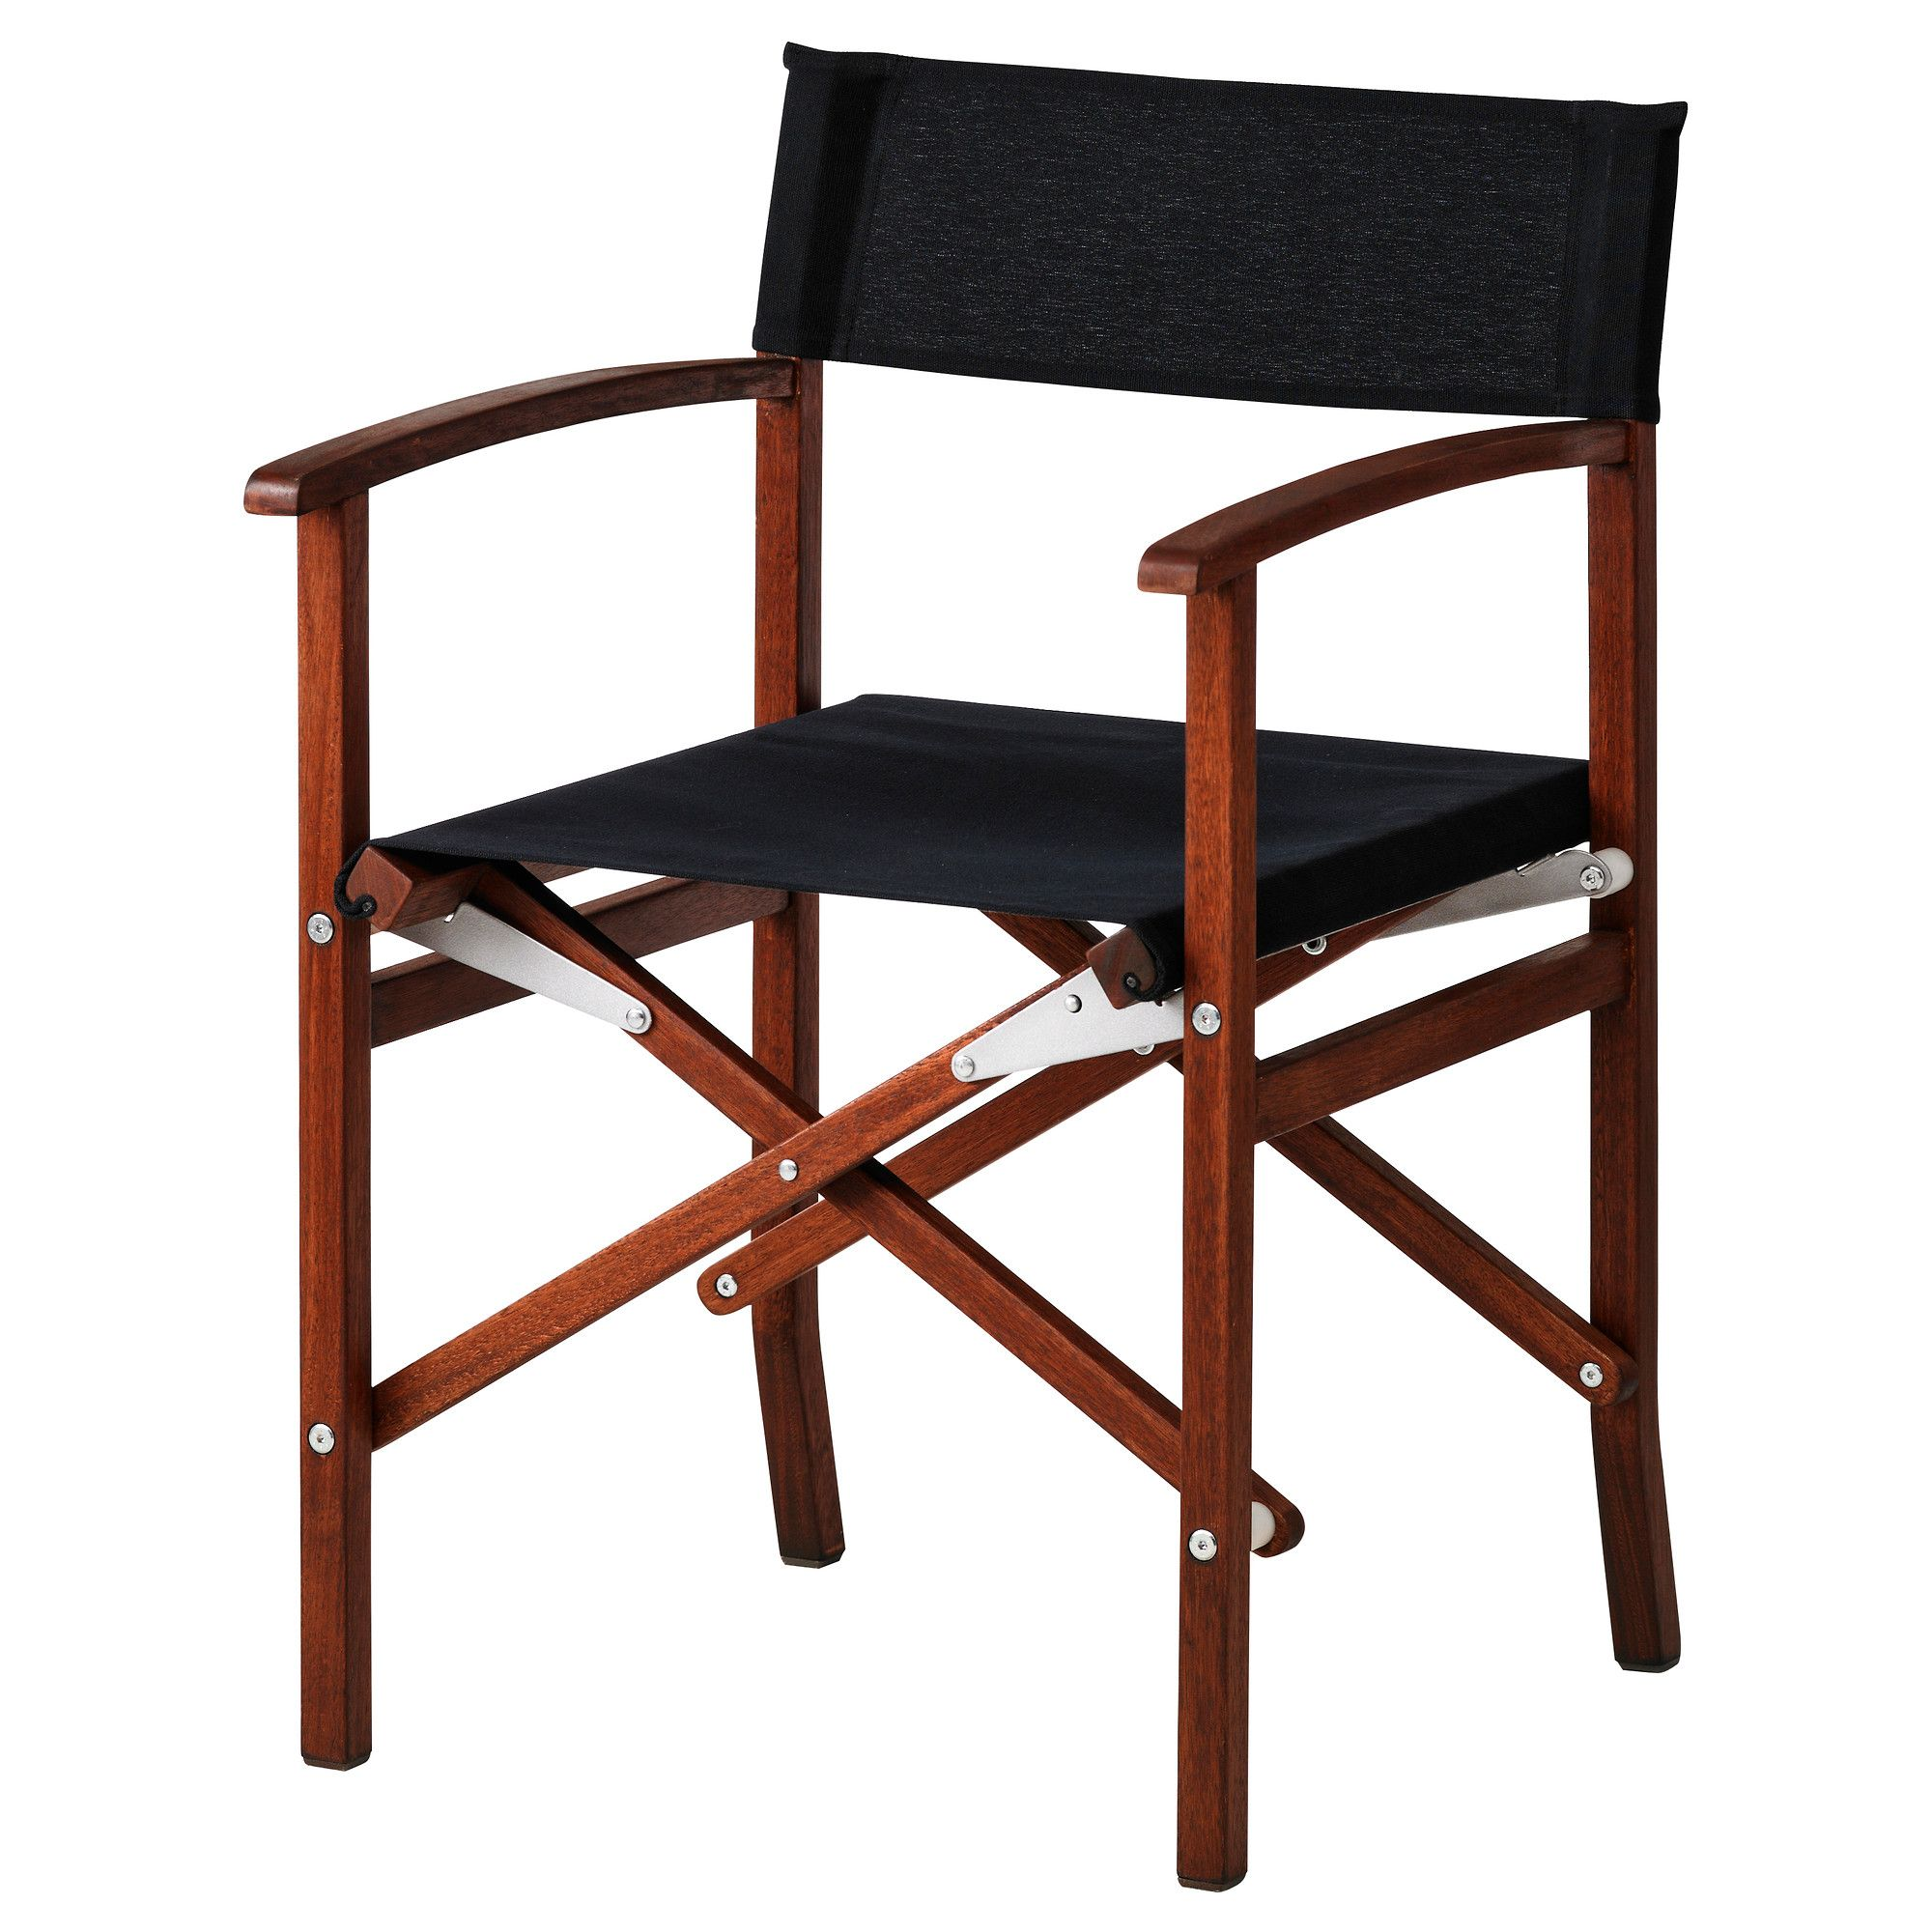 ikea siar director s chair outdoor the chair folds to be rh pinterest com